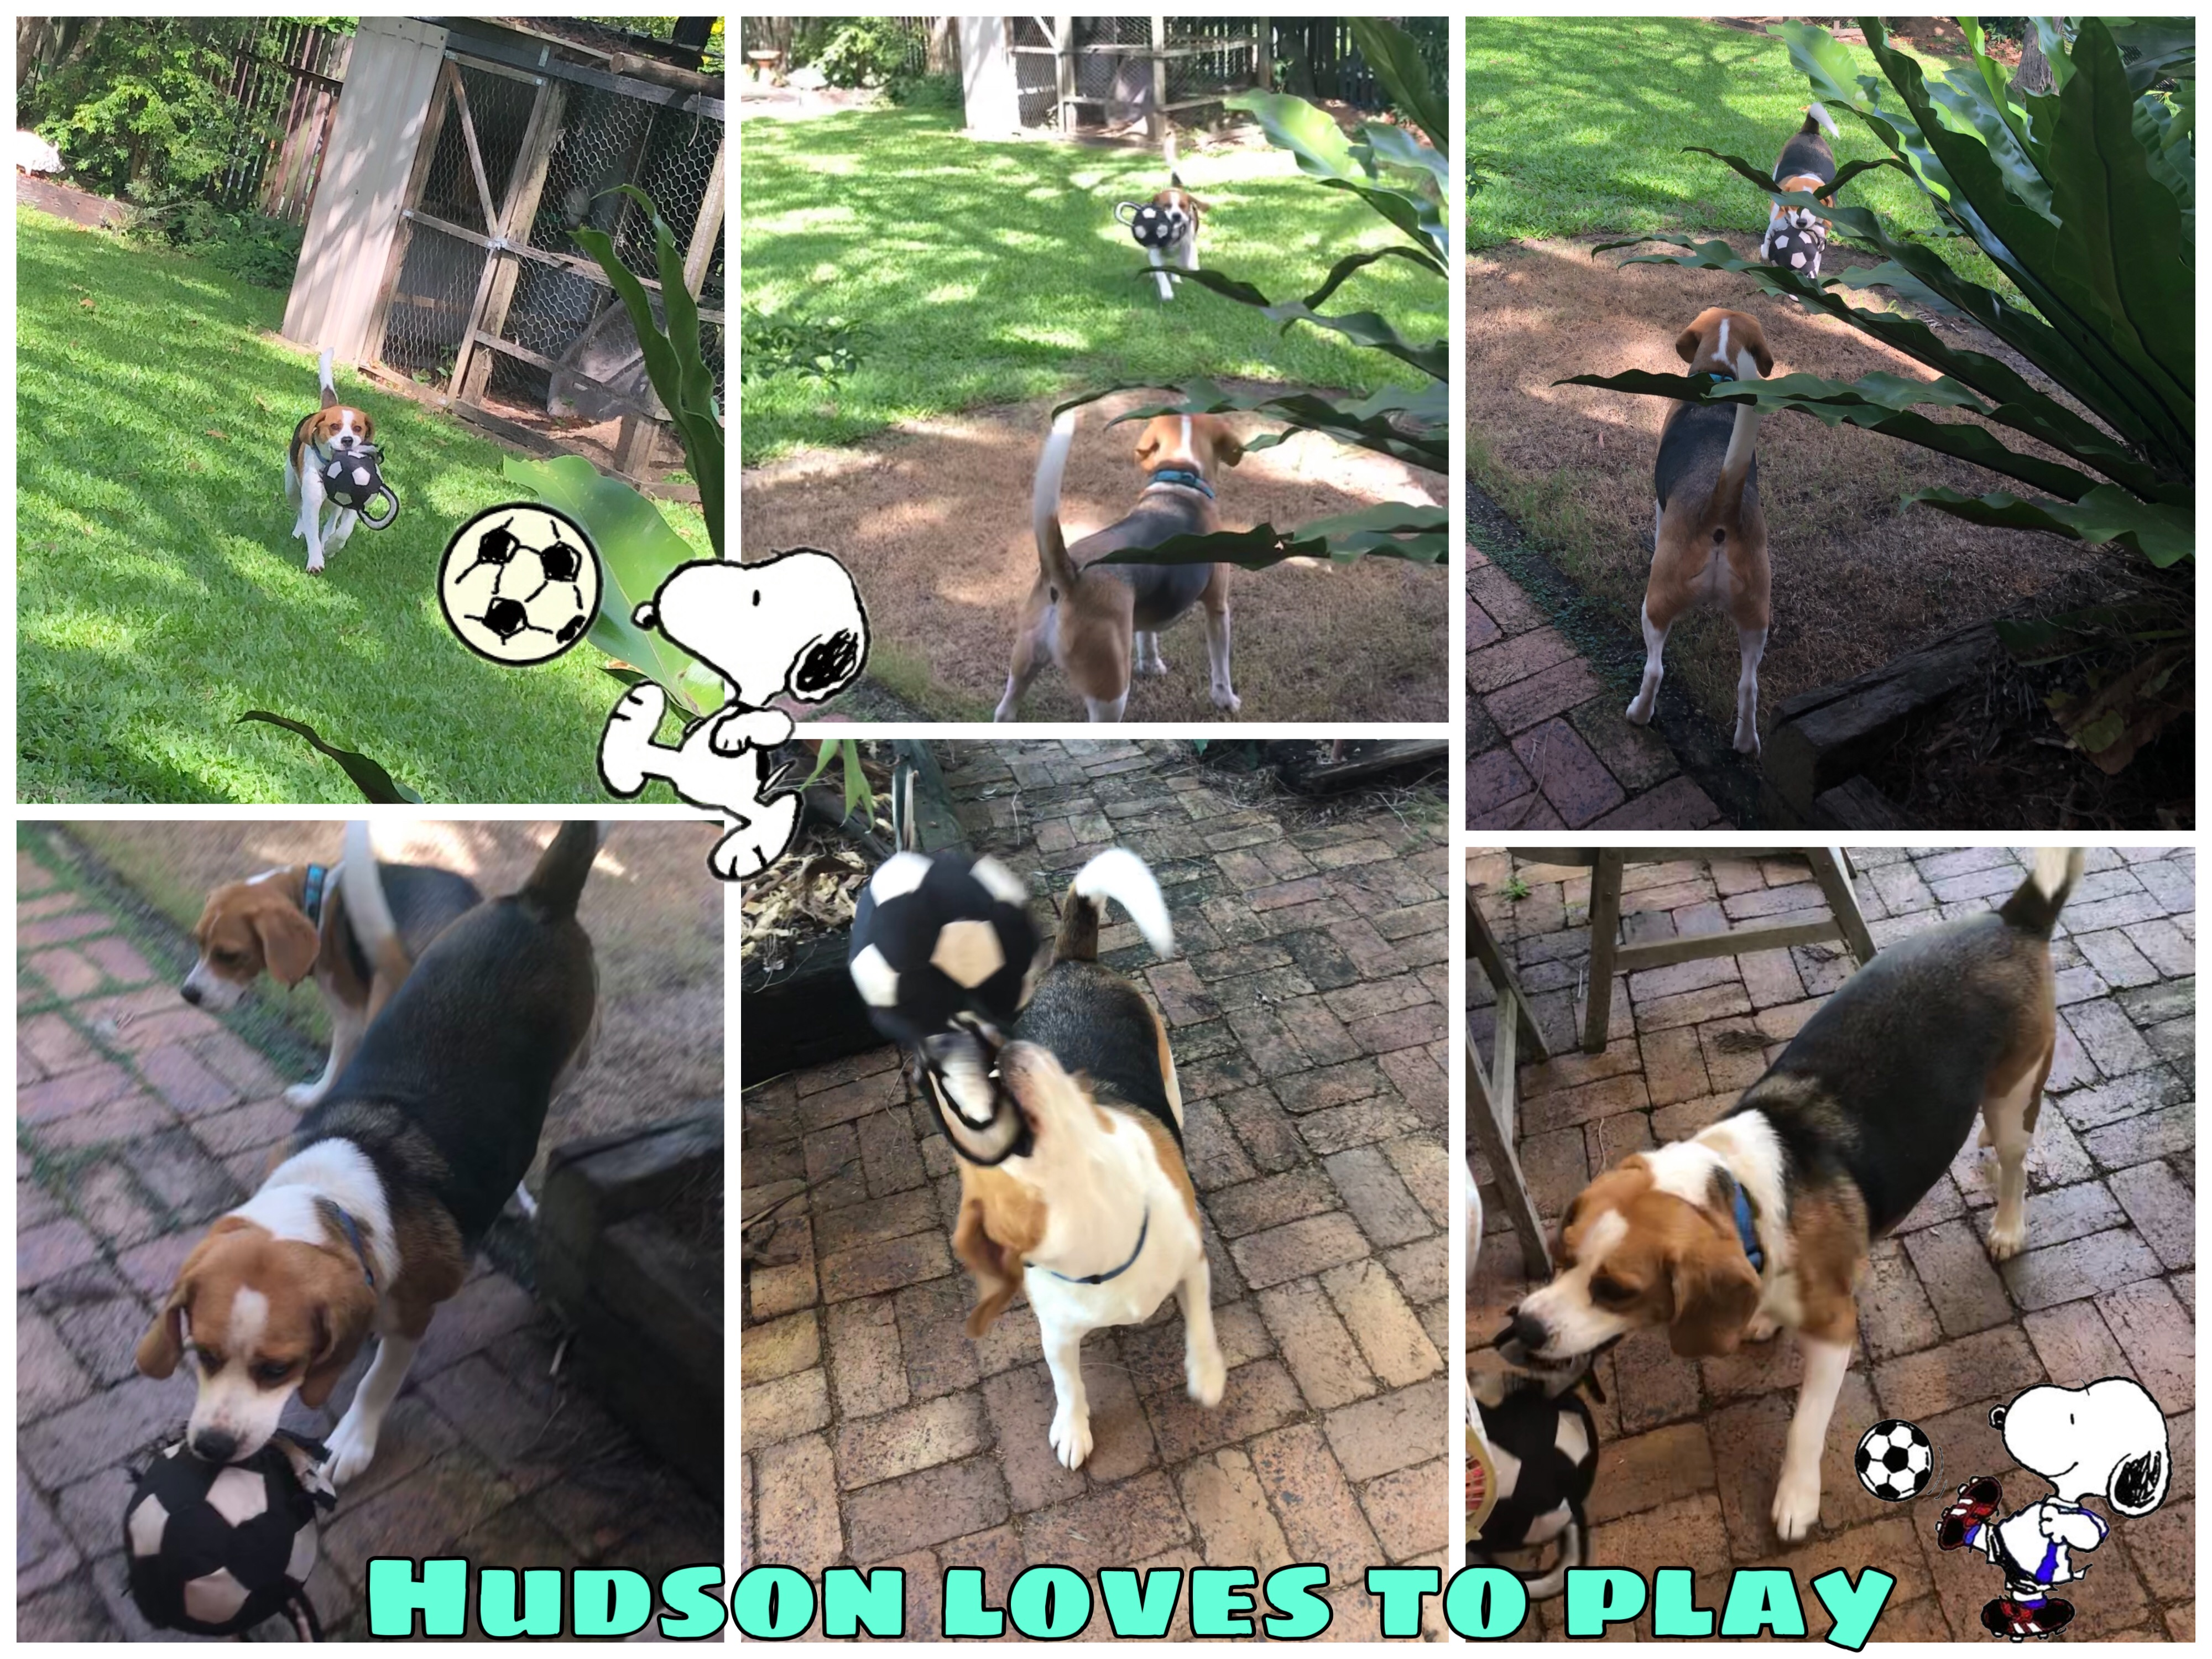 Hudson is adopted